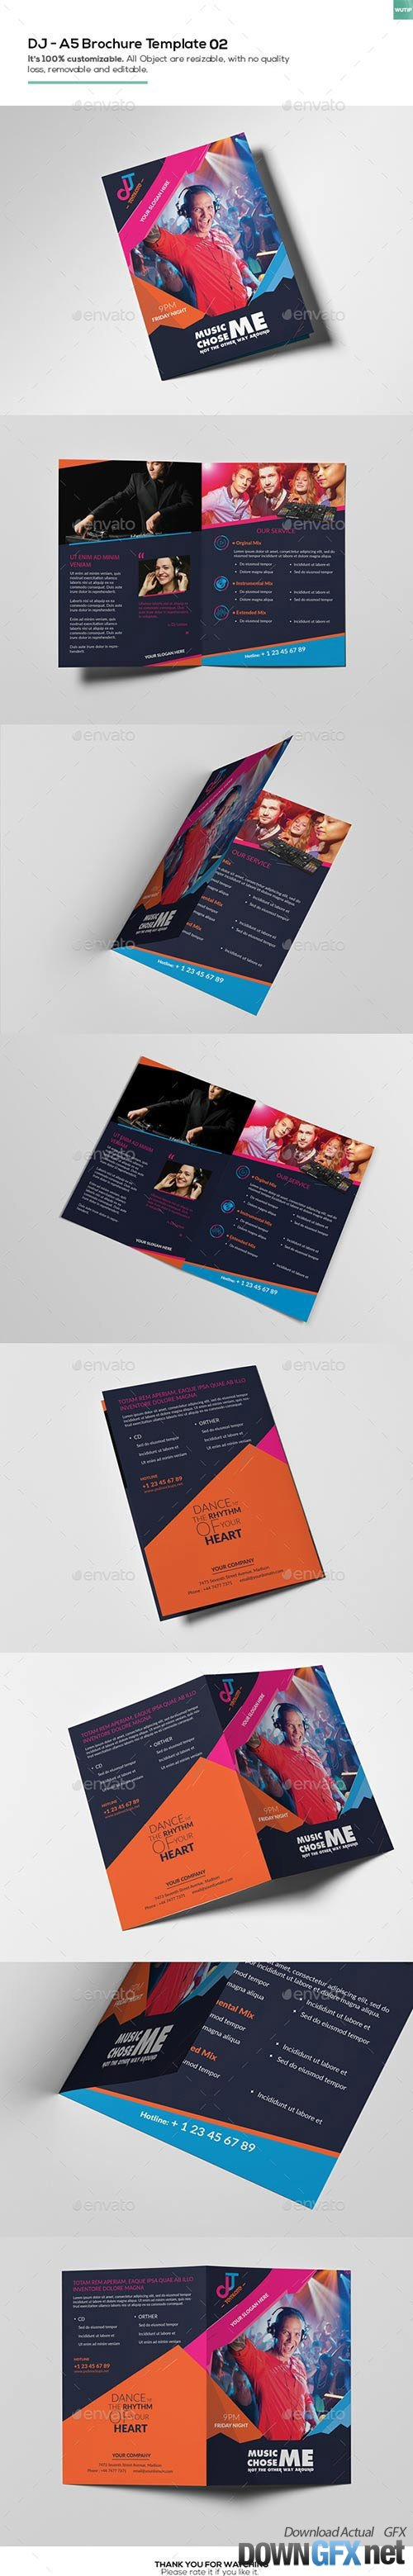 DJ/ A5 Brochure Template 02 16207061